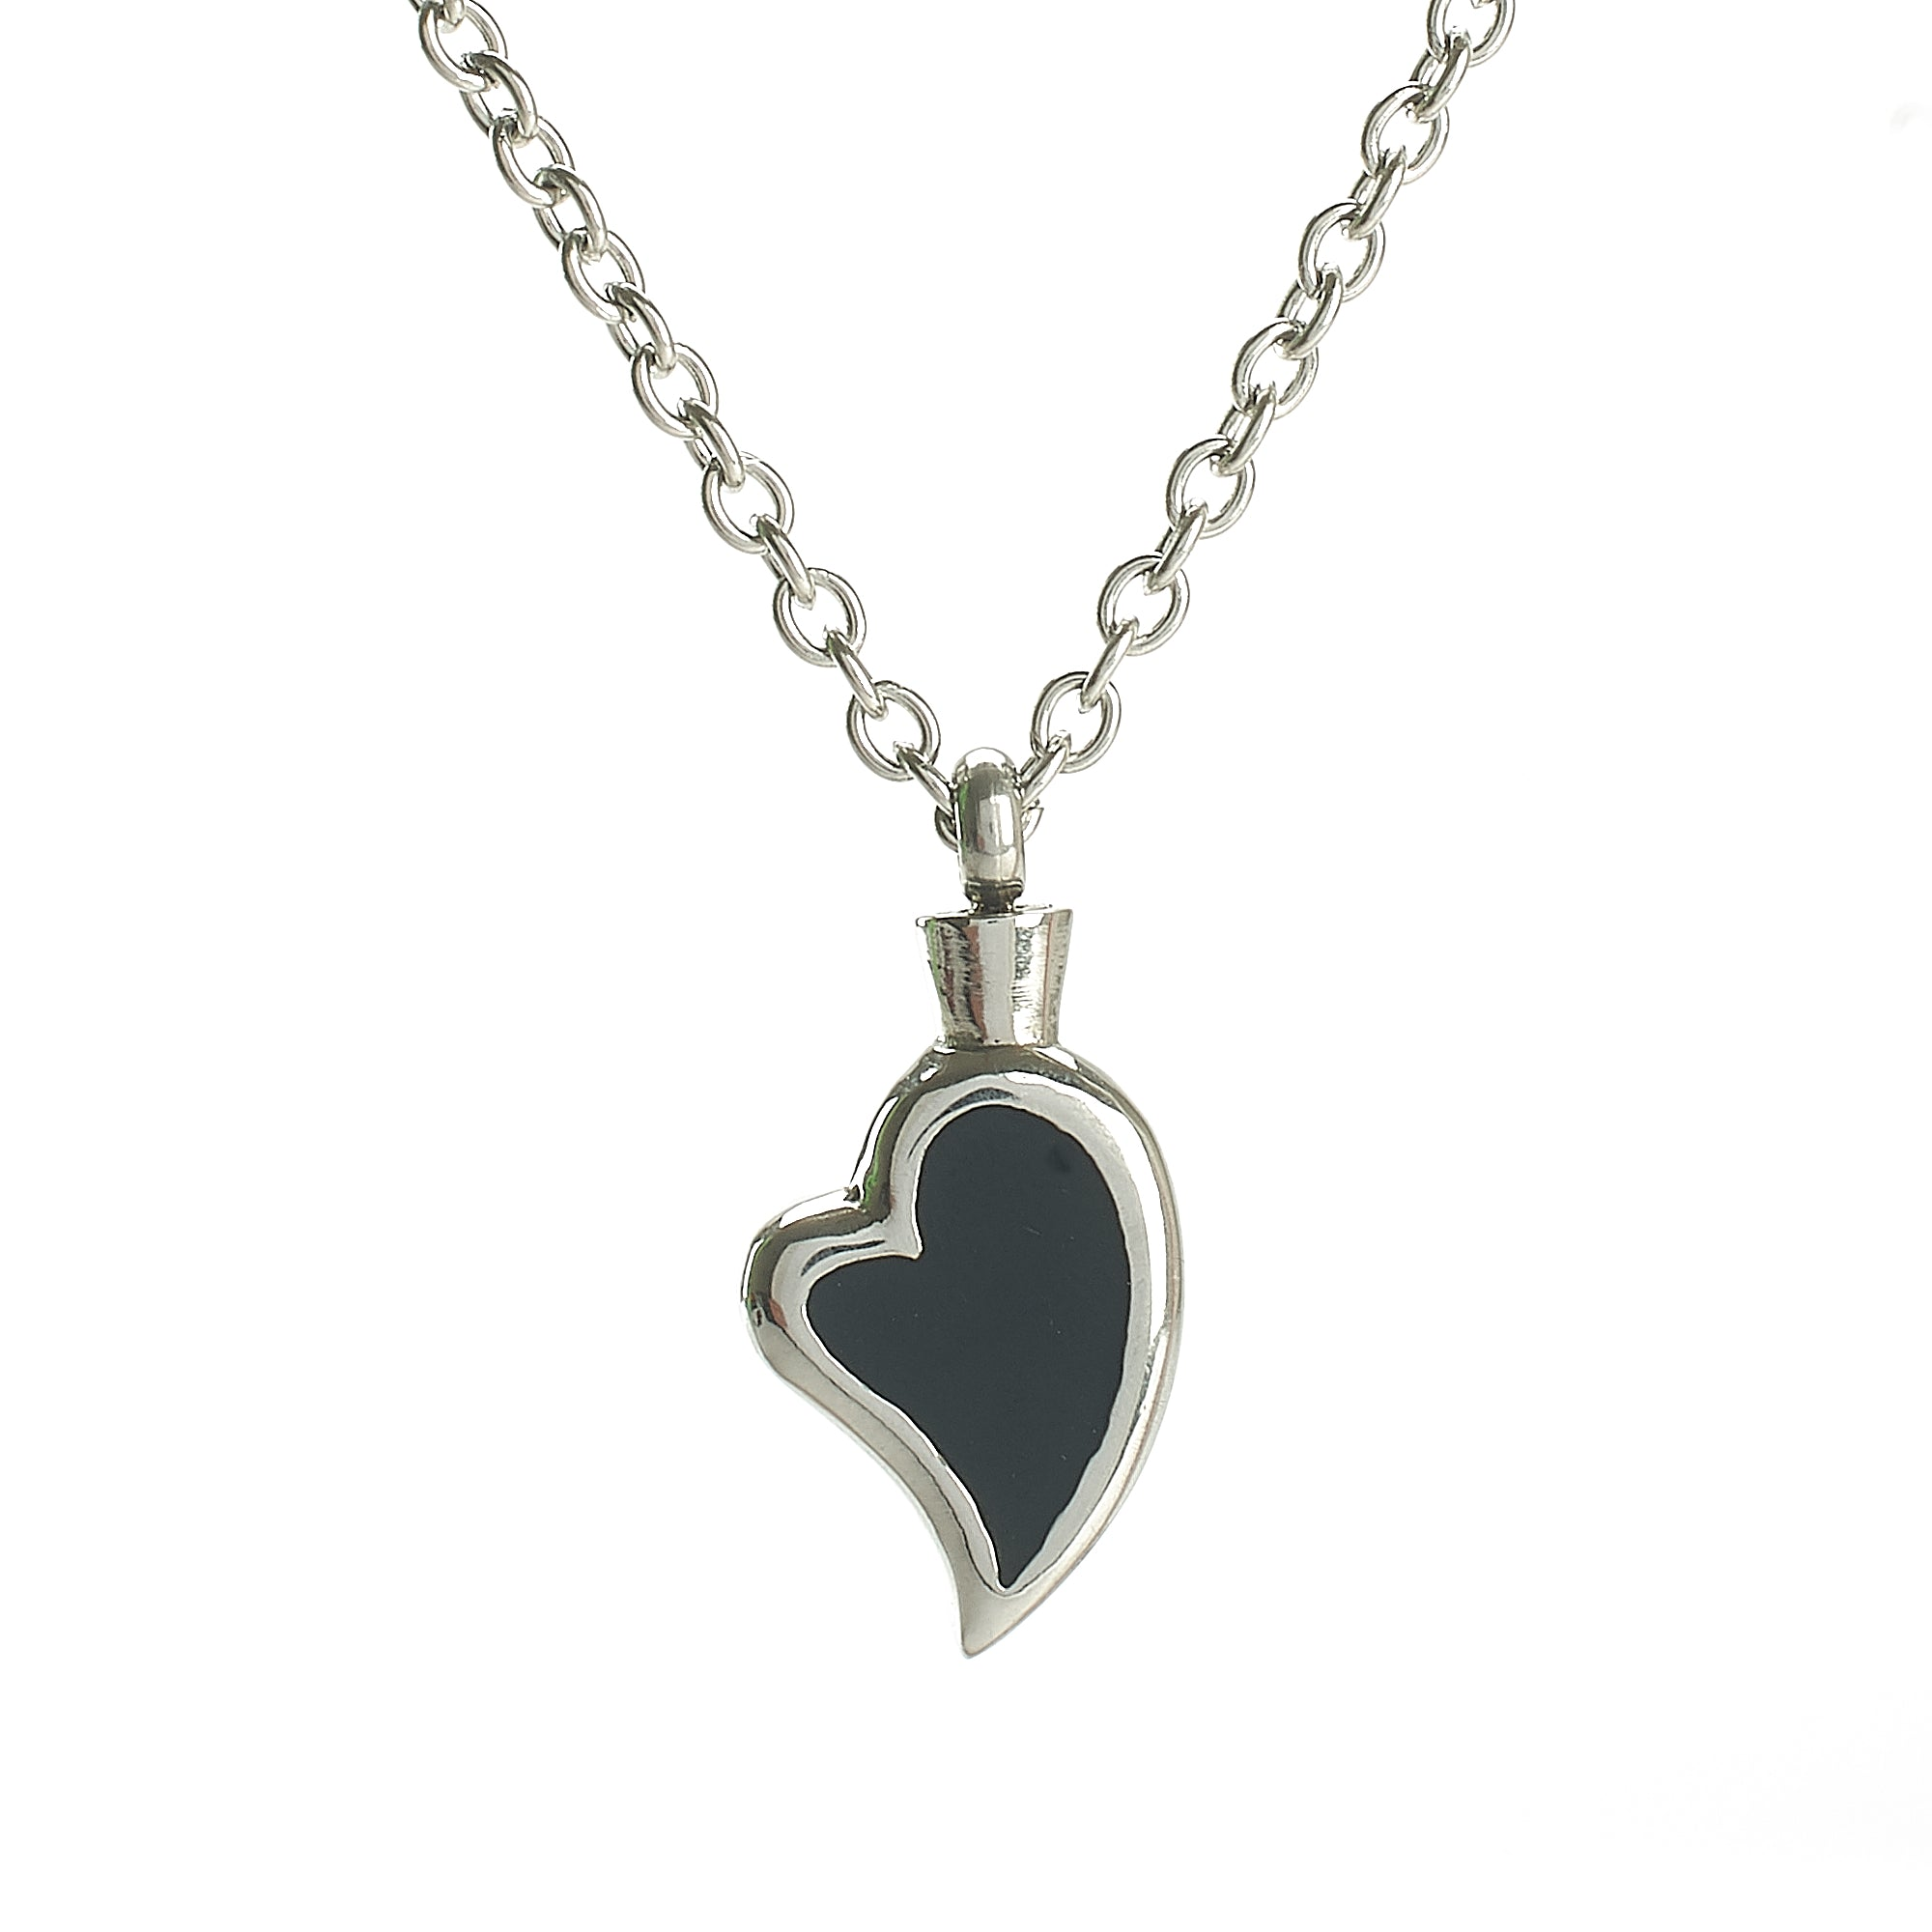 Cremation Pendant - Silver High Shine Abstract heart with Black